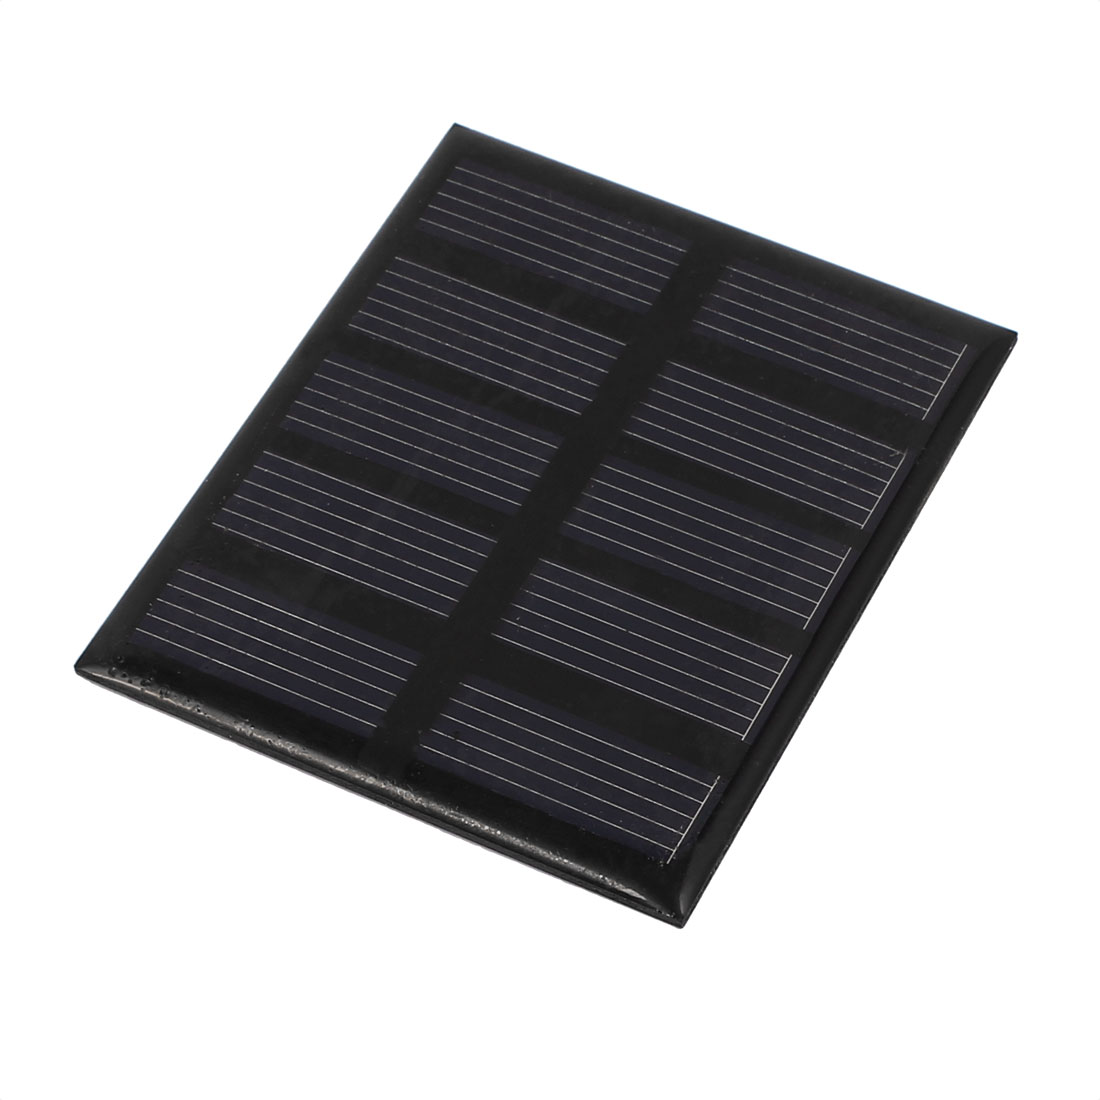 70 x 58mm 0.5W 2.5V Polycrystalline Solar Panel Battery Charger RV Boat Camping